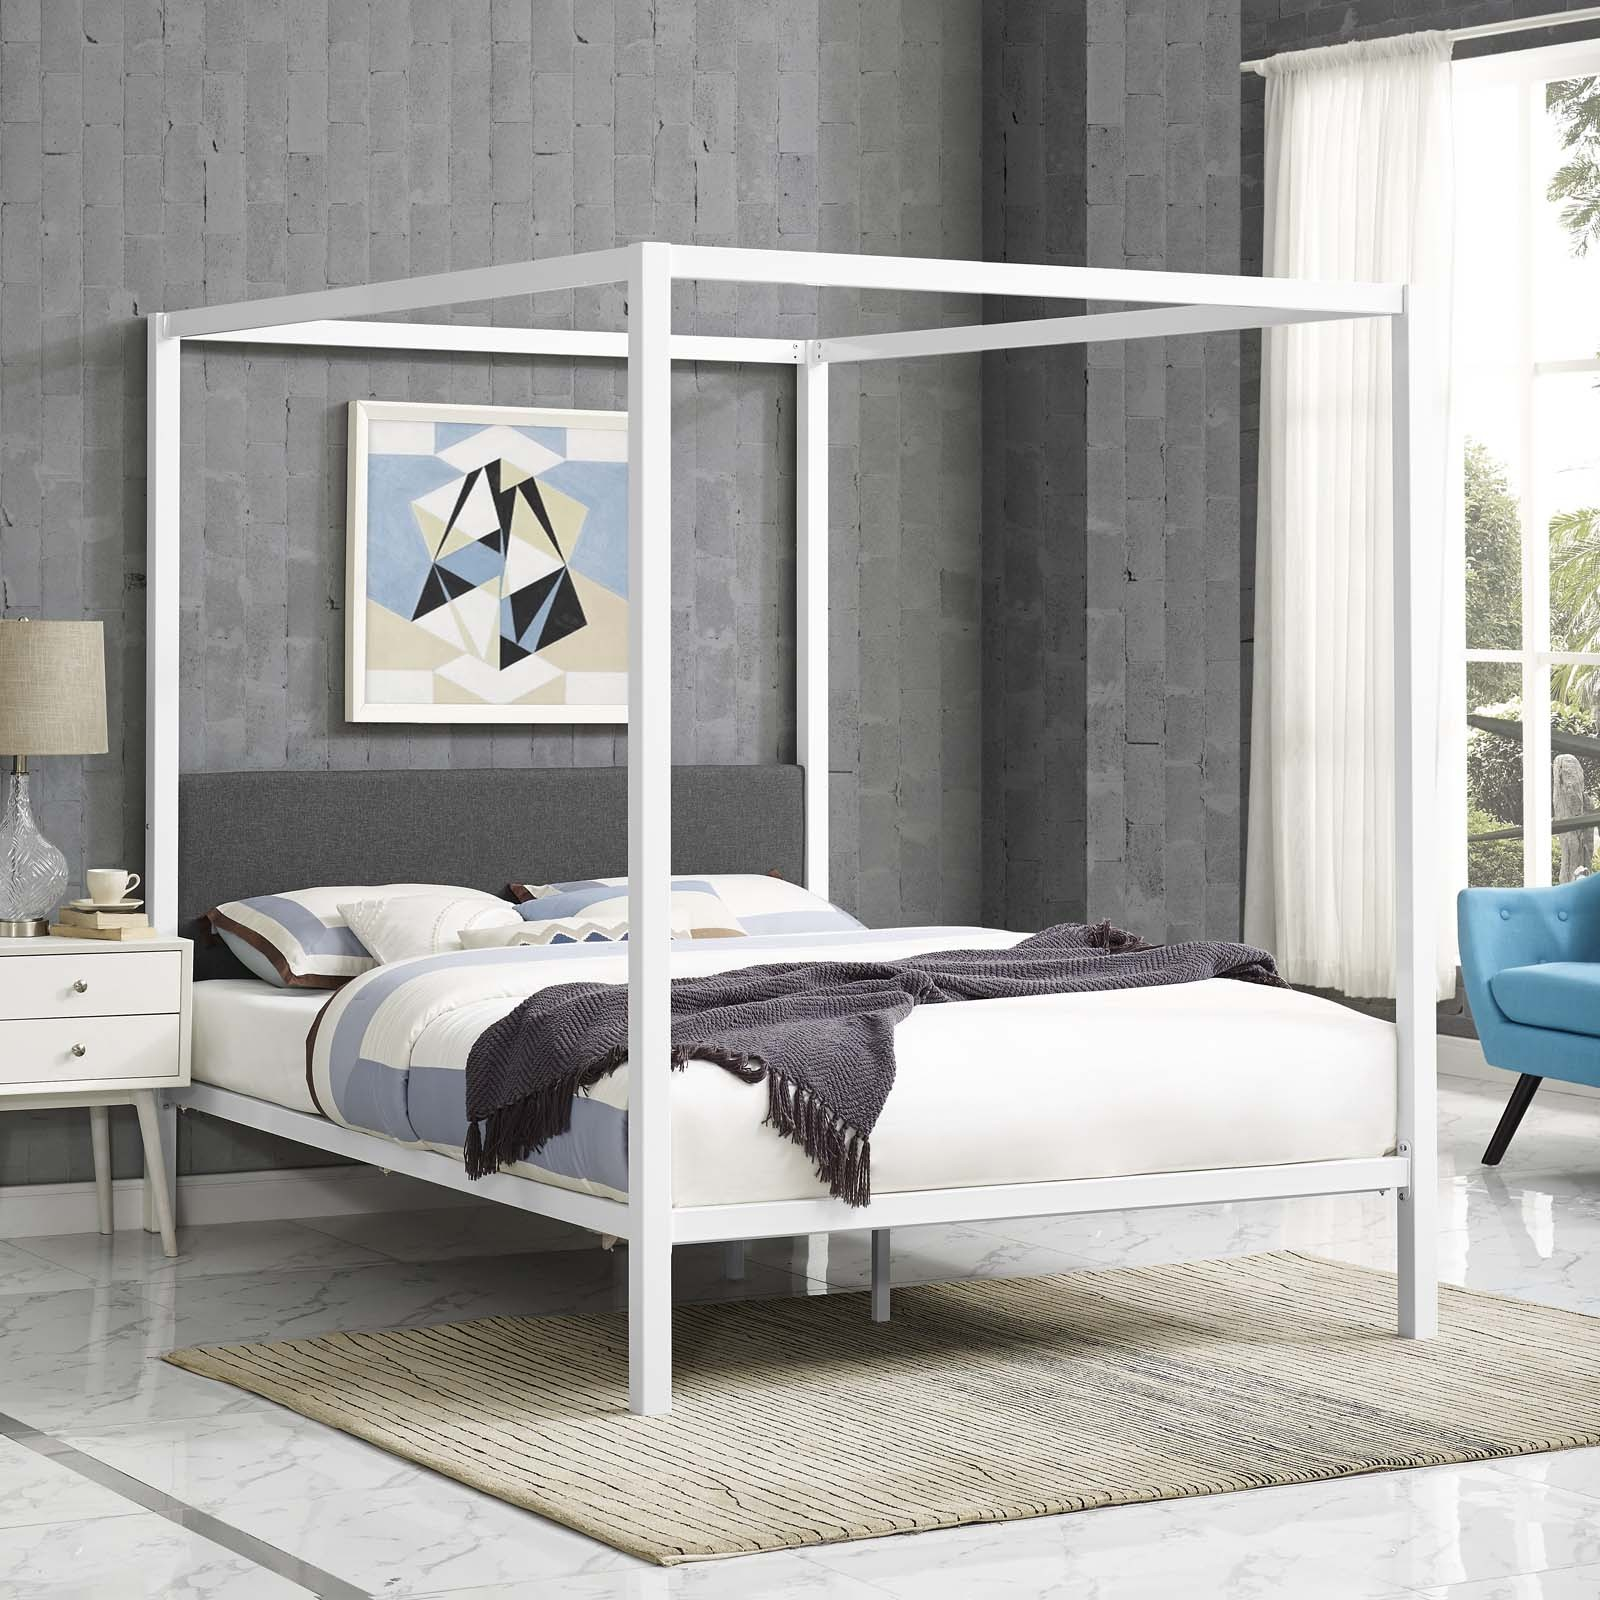 - Raina White And Gray Queen Canopy Bed Frame MOD-5570-WHI-GRY